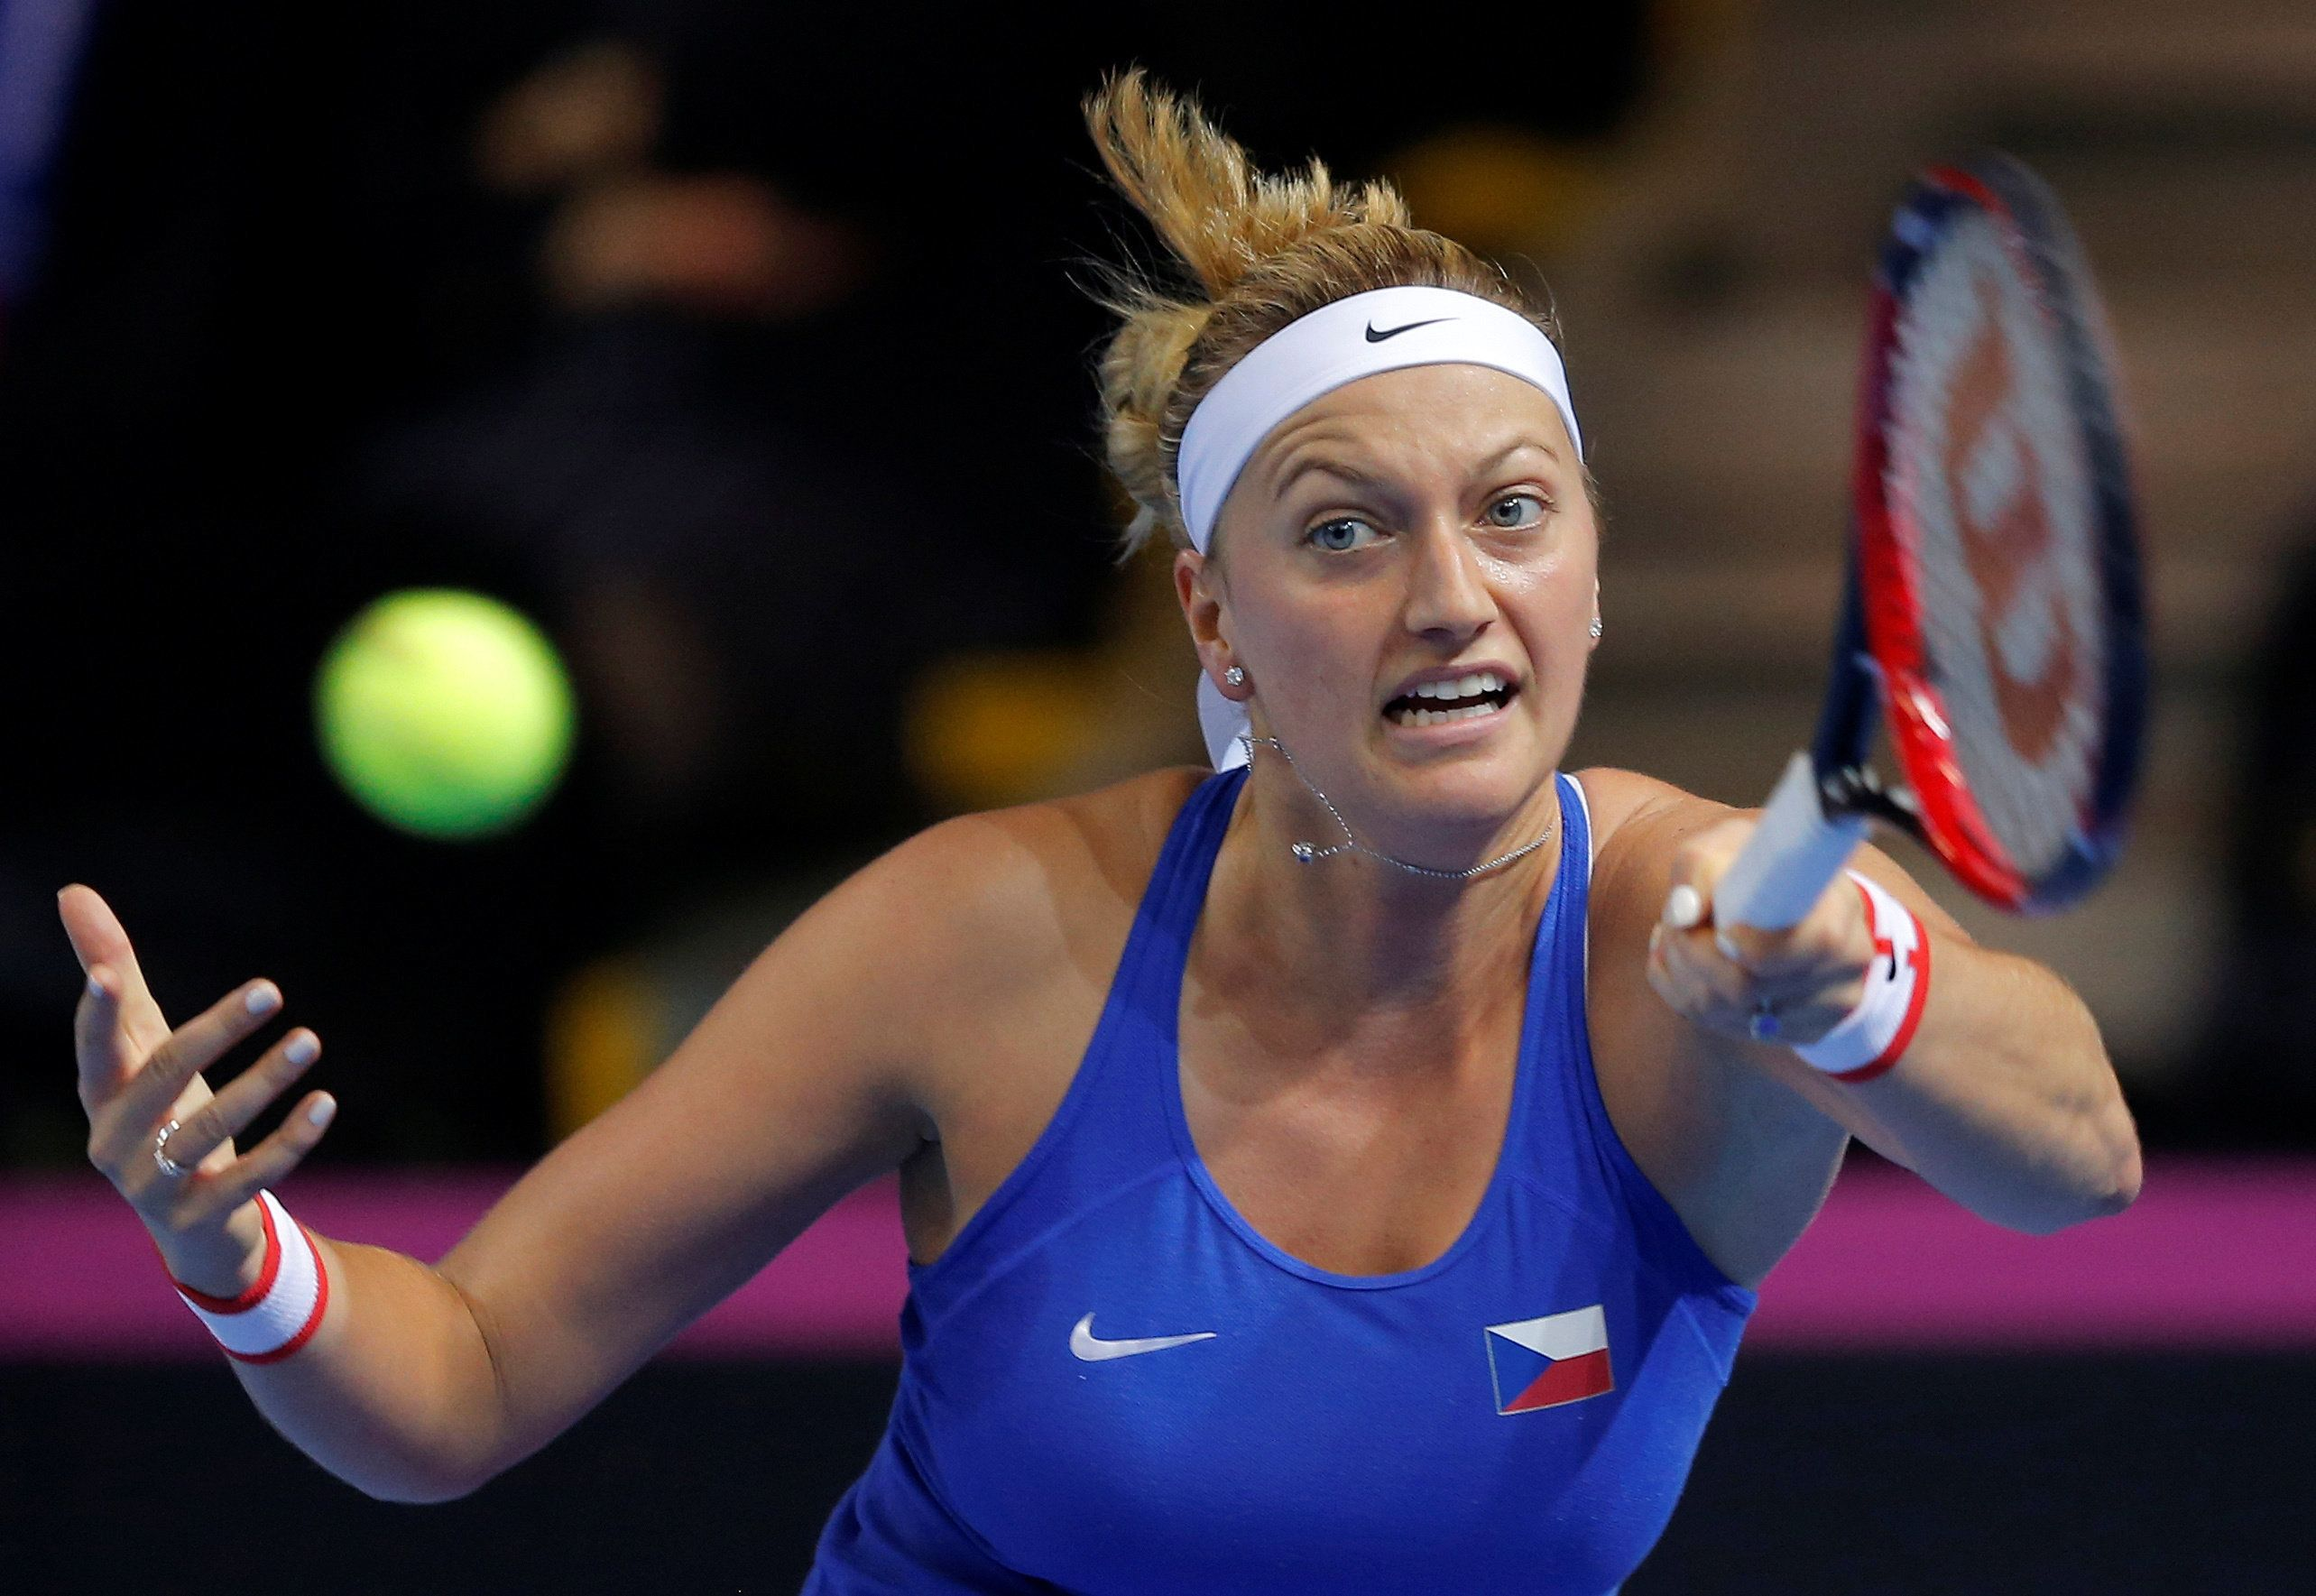 Tennis -  Fed Cup Final - France v Czech Republic - Strasbourg, France - 12/11/16  Czech Republic's Petra Kvitova plays a shot to France's Caroline Garcia. REUTERS/Vincent Kessler